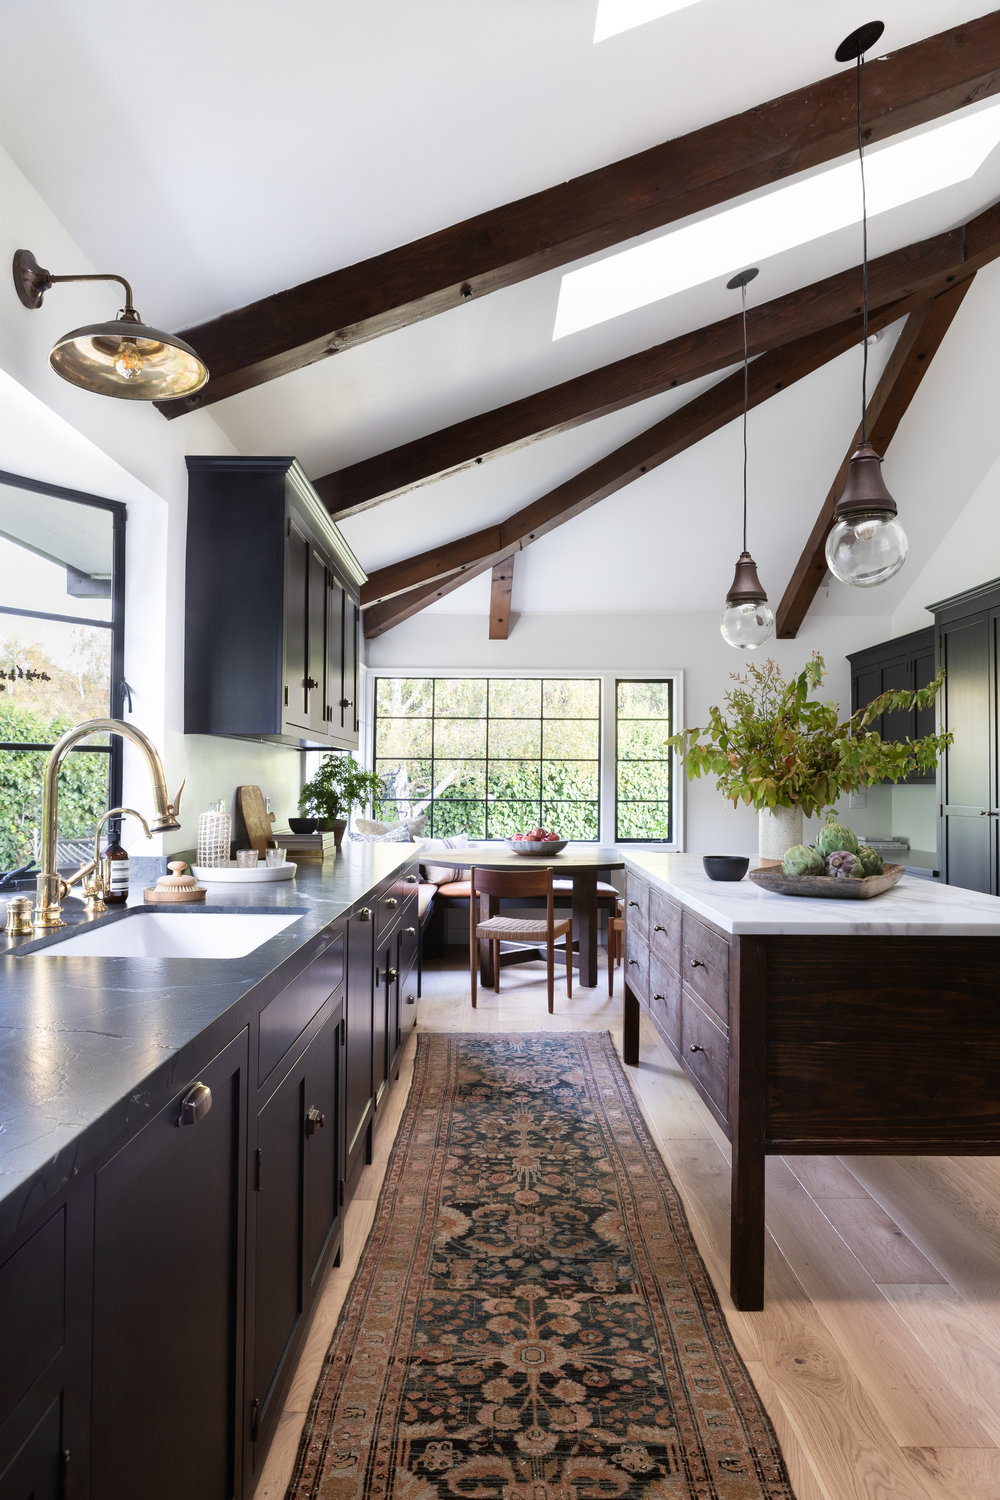 Amber-Interiors-Client-Greater-Than-Great-Kitchen.jpg